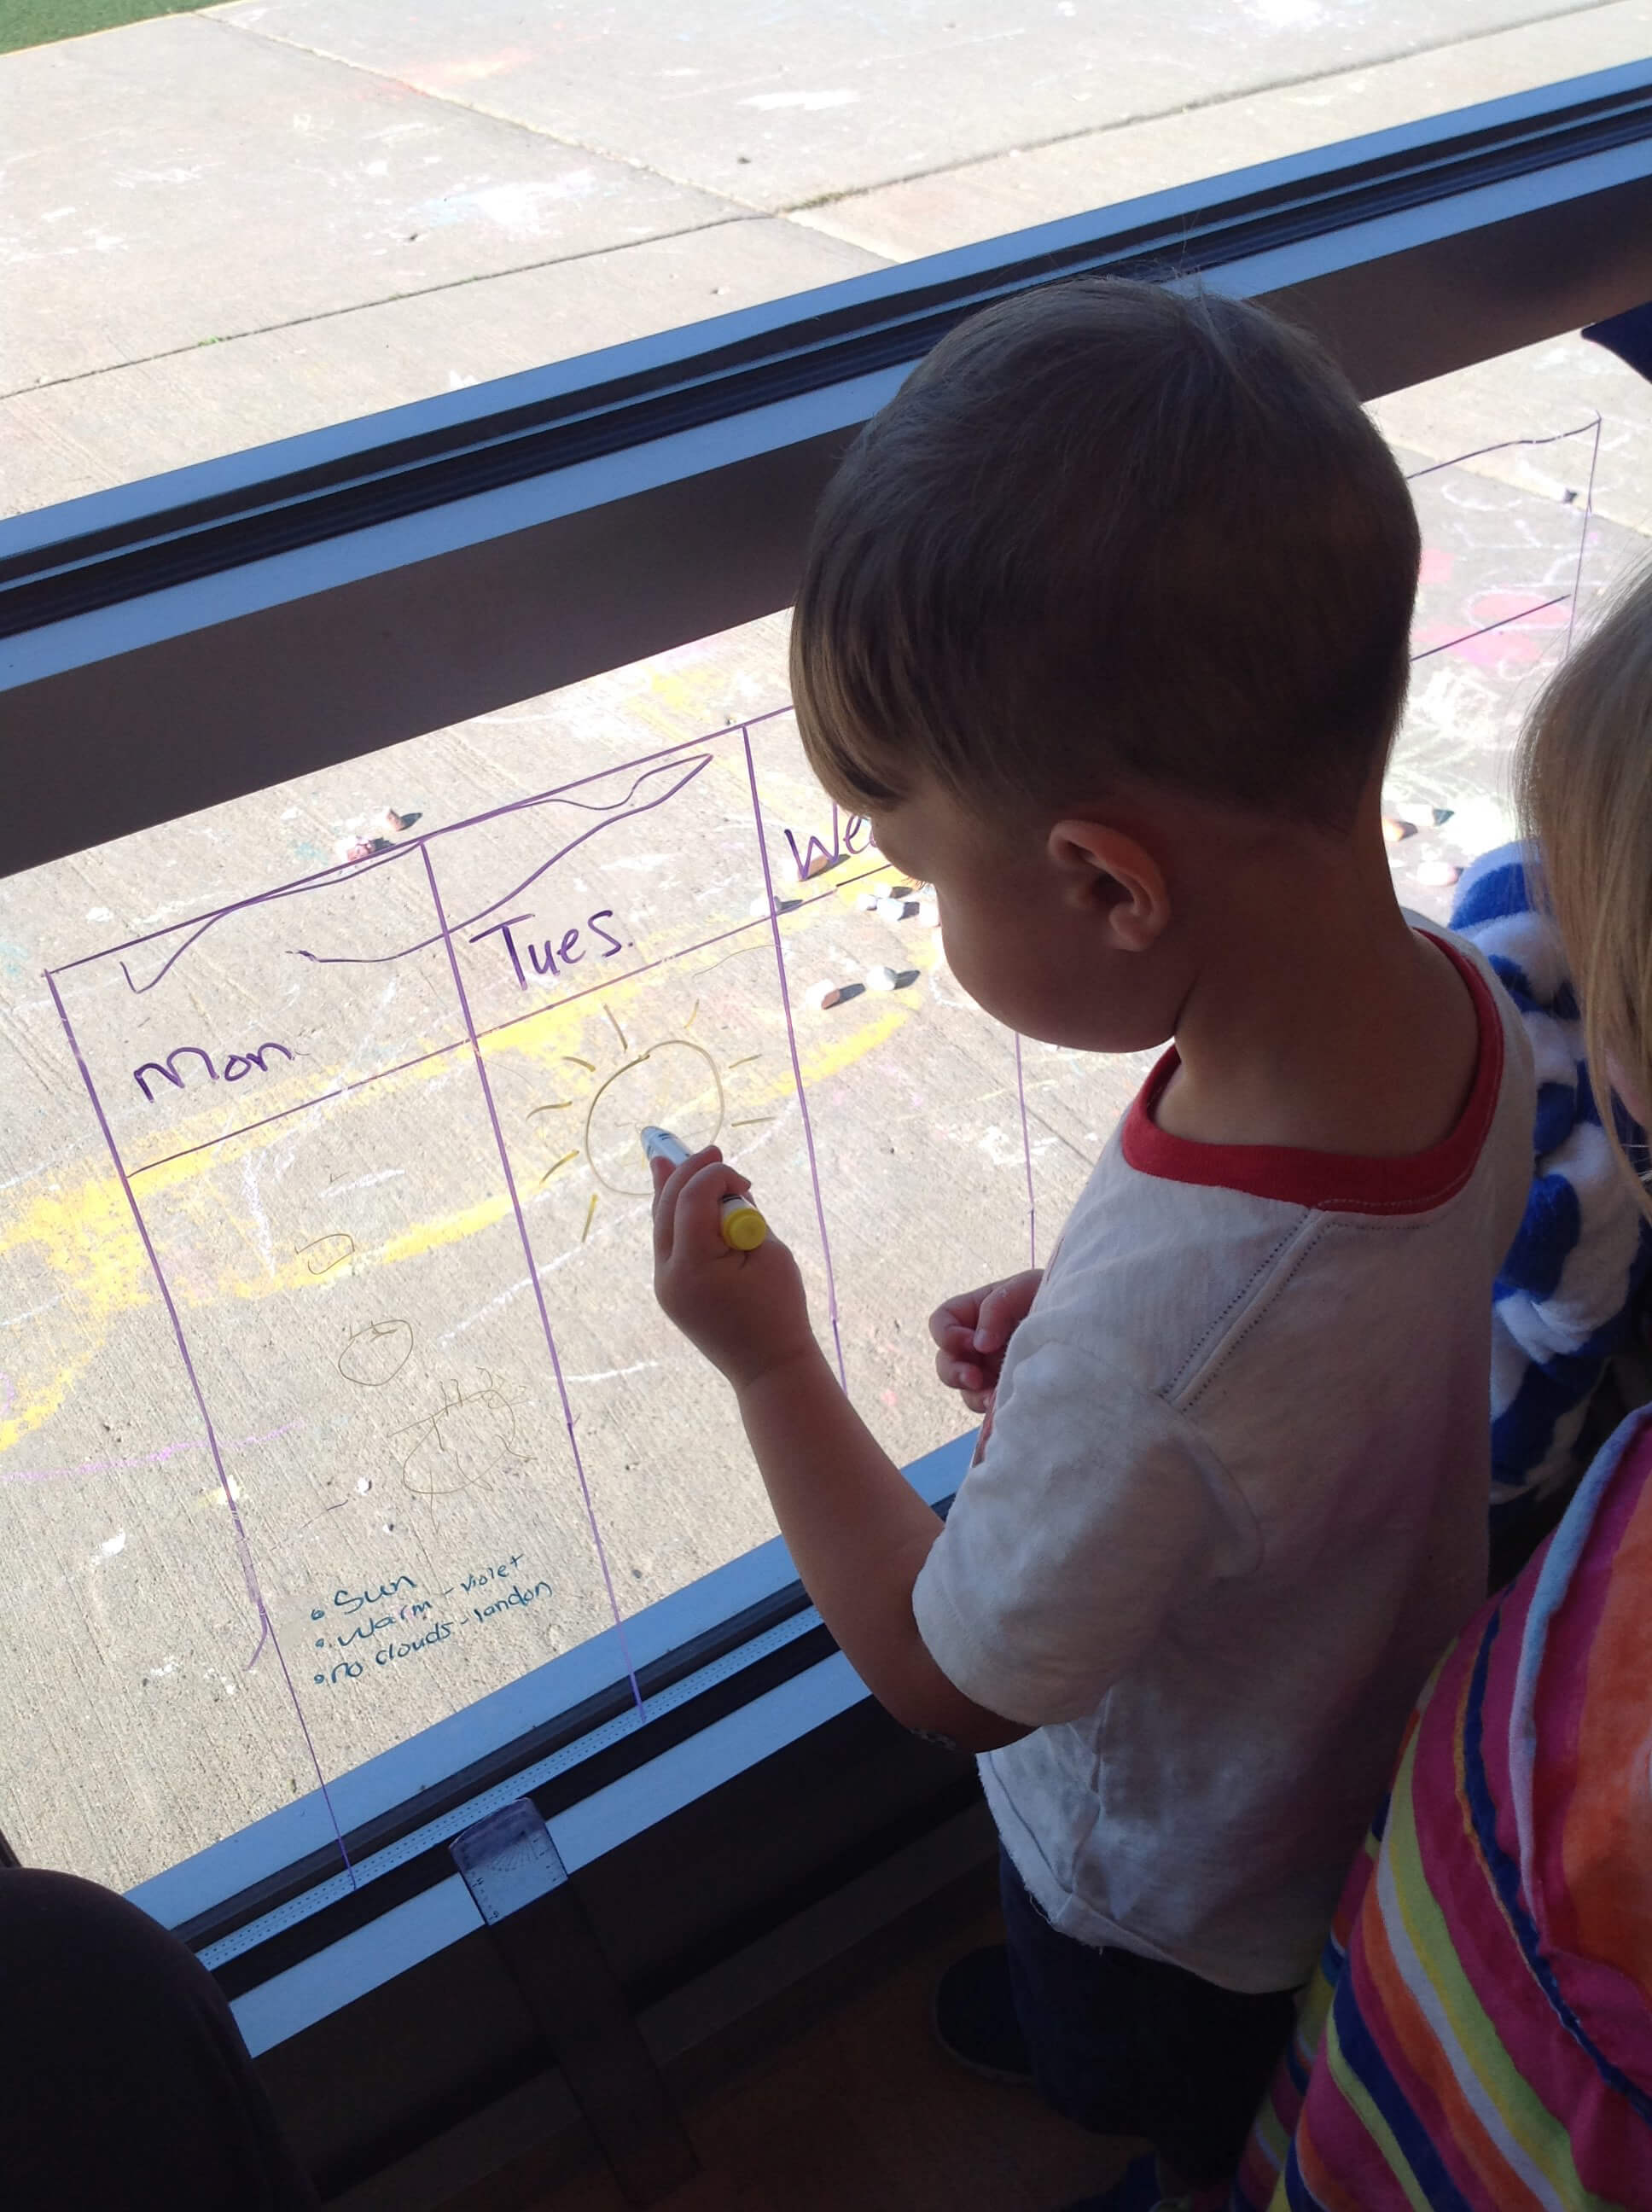 charting the weather on a window